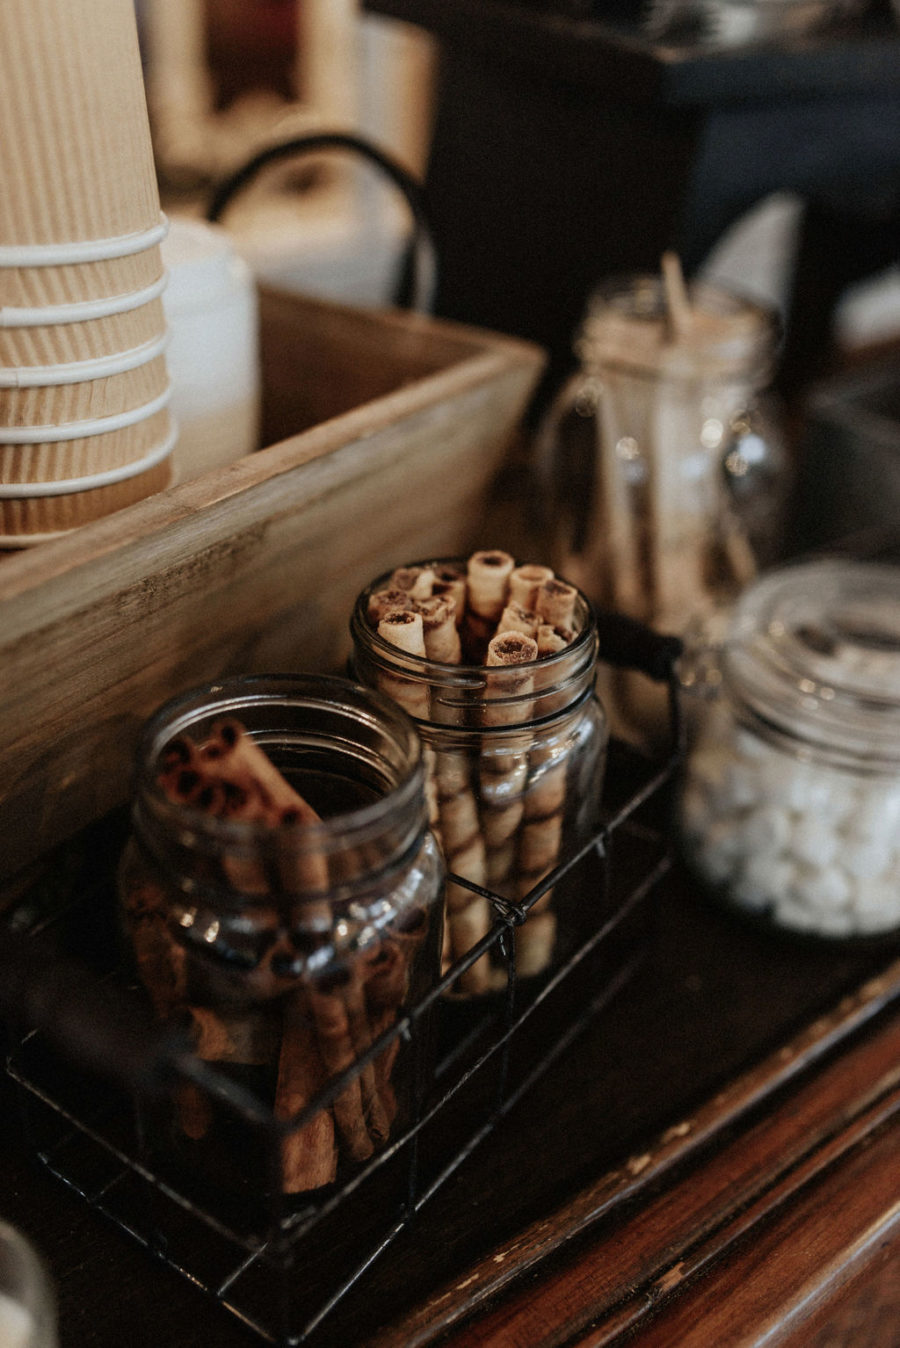 Hot cocoa wedding bar: Magical Winter Wedding by Meghan Melia Photography featured on Nashville Bride Guide!